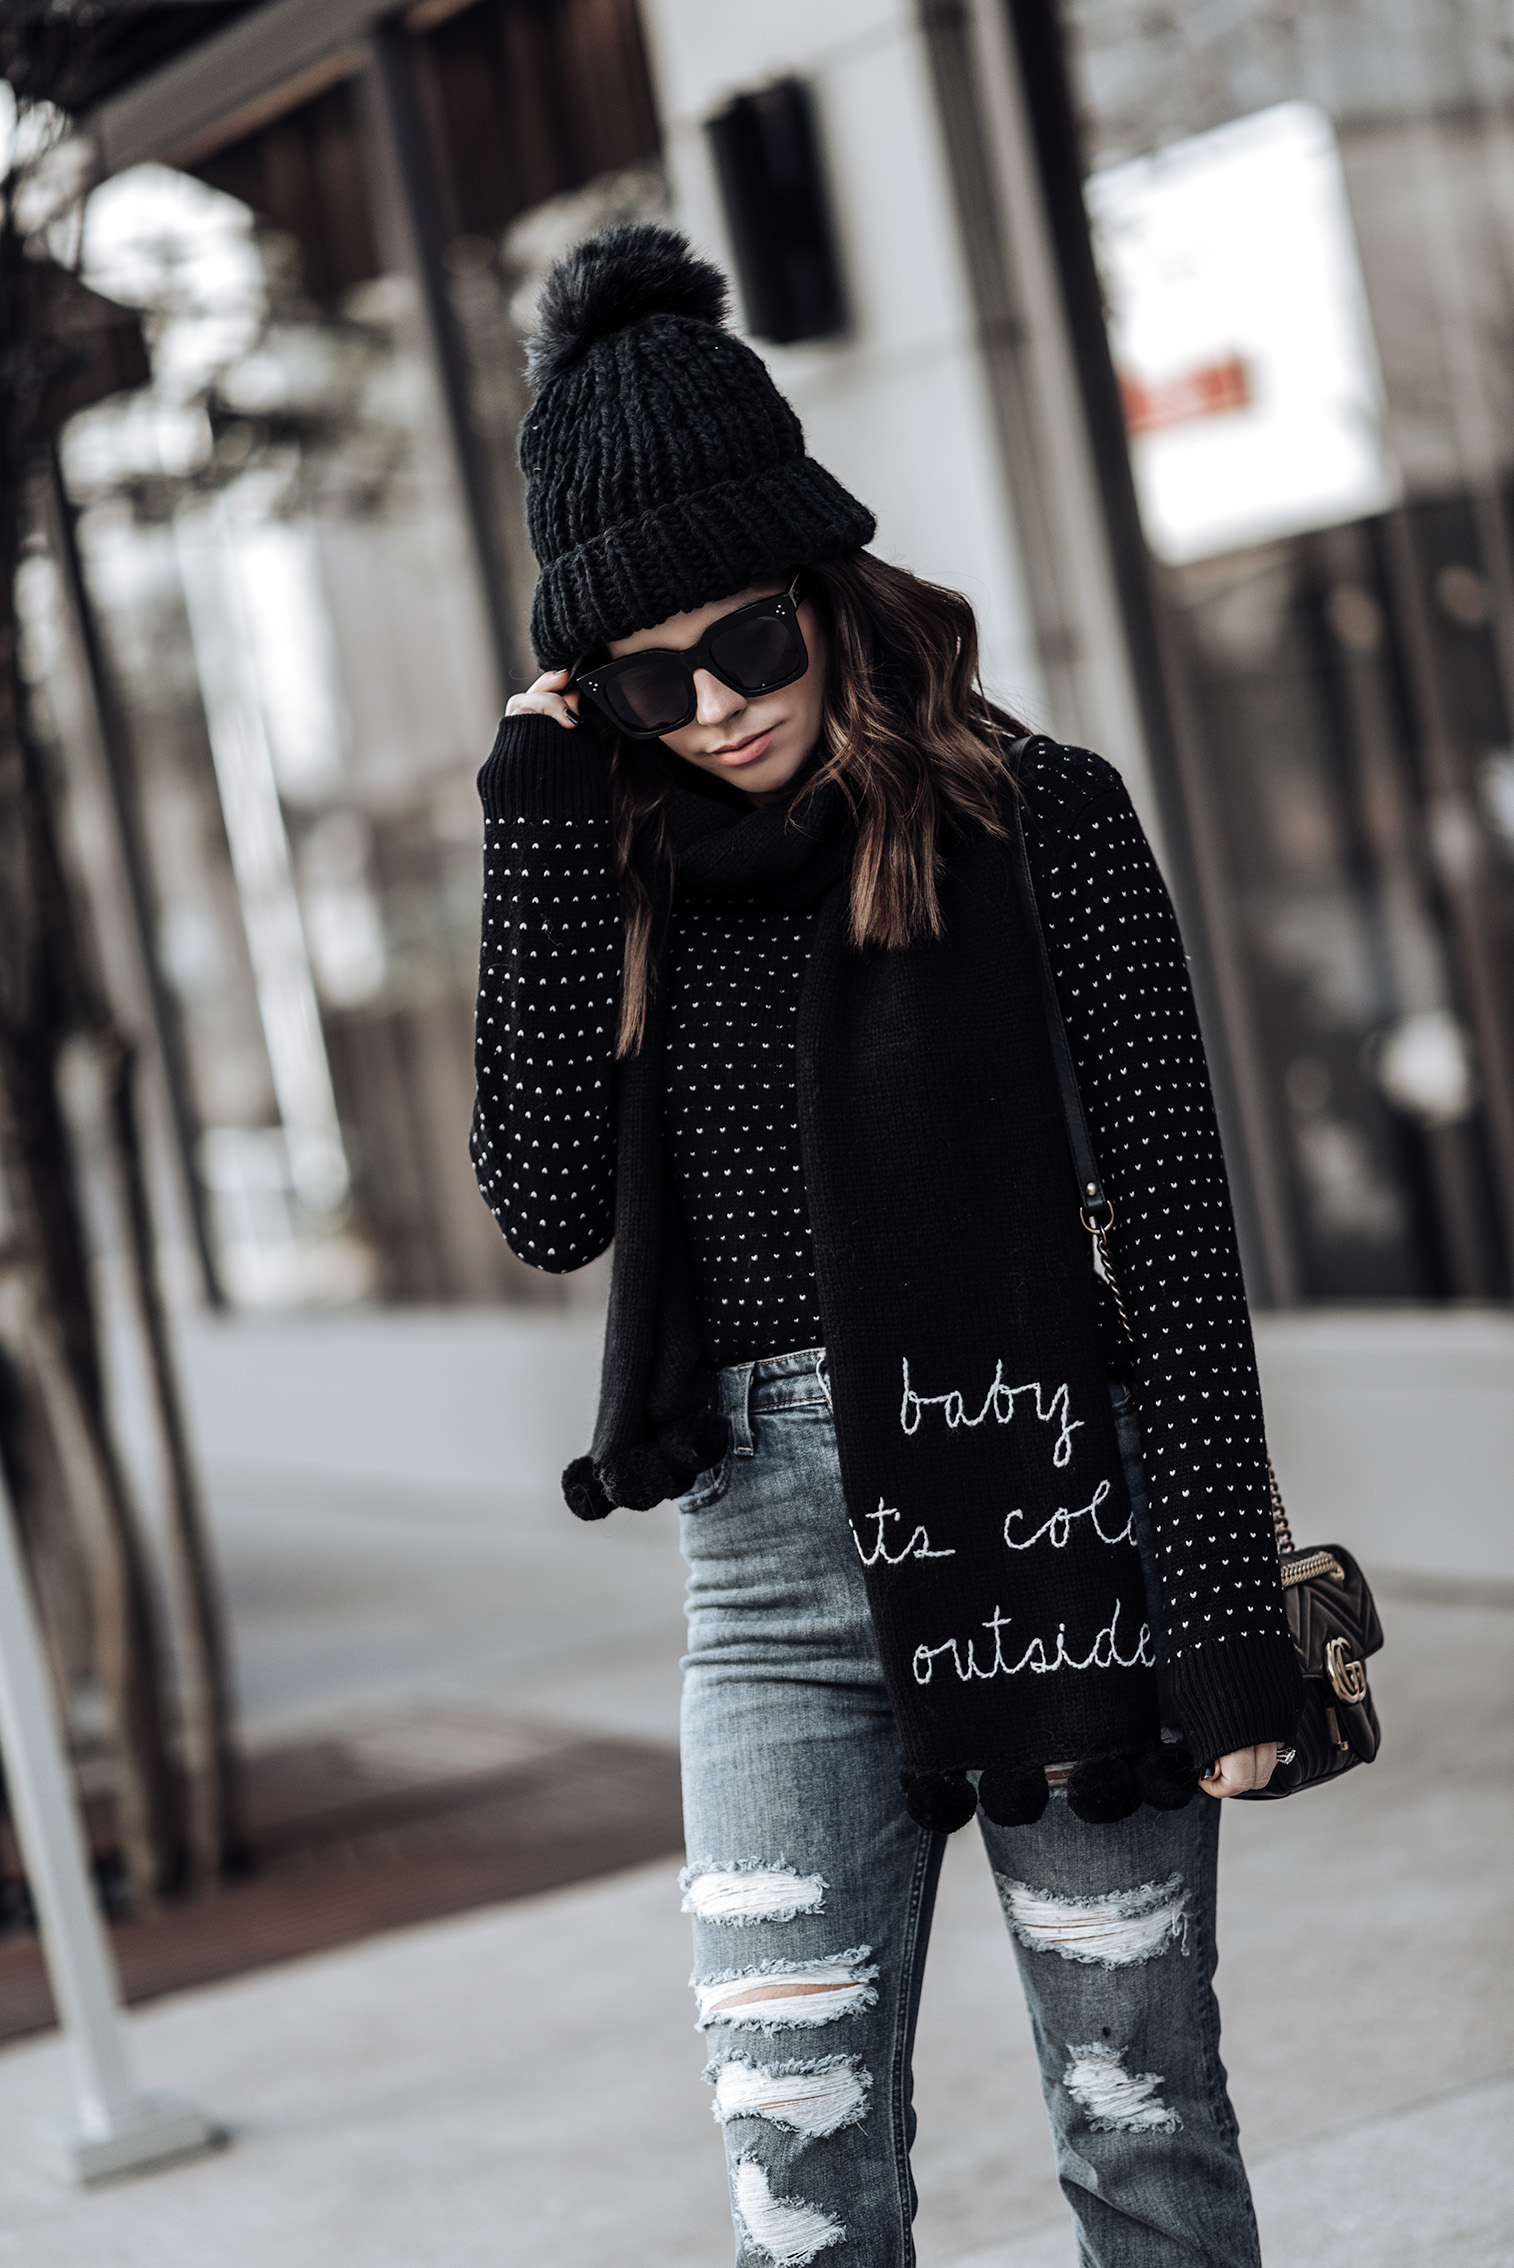 Tiffany Jais fashion and lifestyle blogger of Flaunt and Center | Houston fashion blogger | Holiday feels | Streetstyle blog |Happy Trails Beanie | Celine Tilda Sunglasses | ASOS metallic ankle boots {C/O} | Baby it's cold outside scarf | High rise ankle straight jeans | street style outfits |